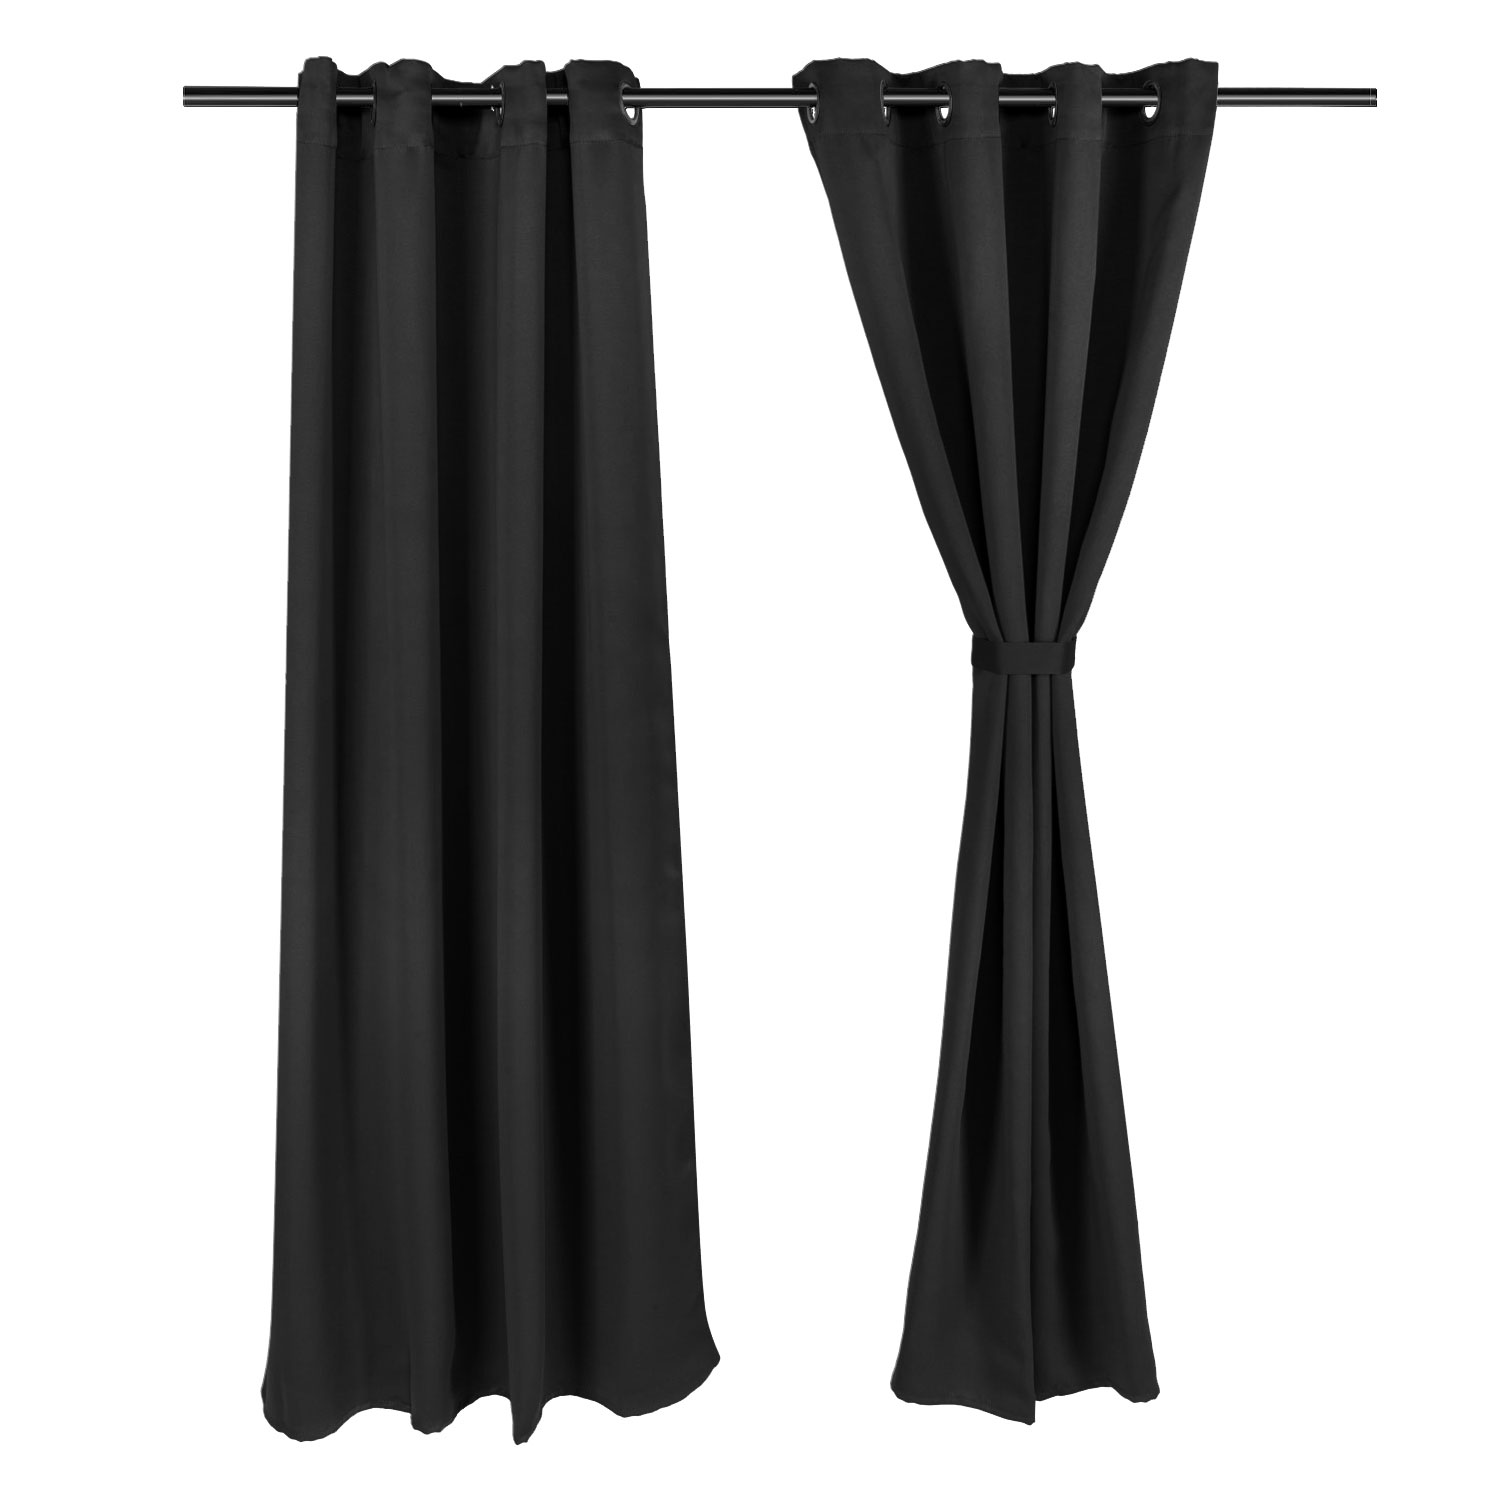 Blackout Curtains 2 Panel Living Bedroom Clear Set 52x63 Inch Window Curtain US